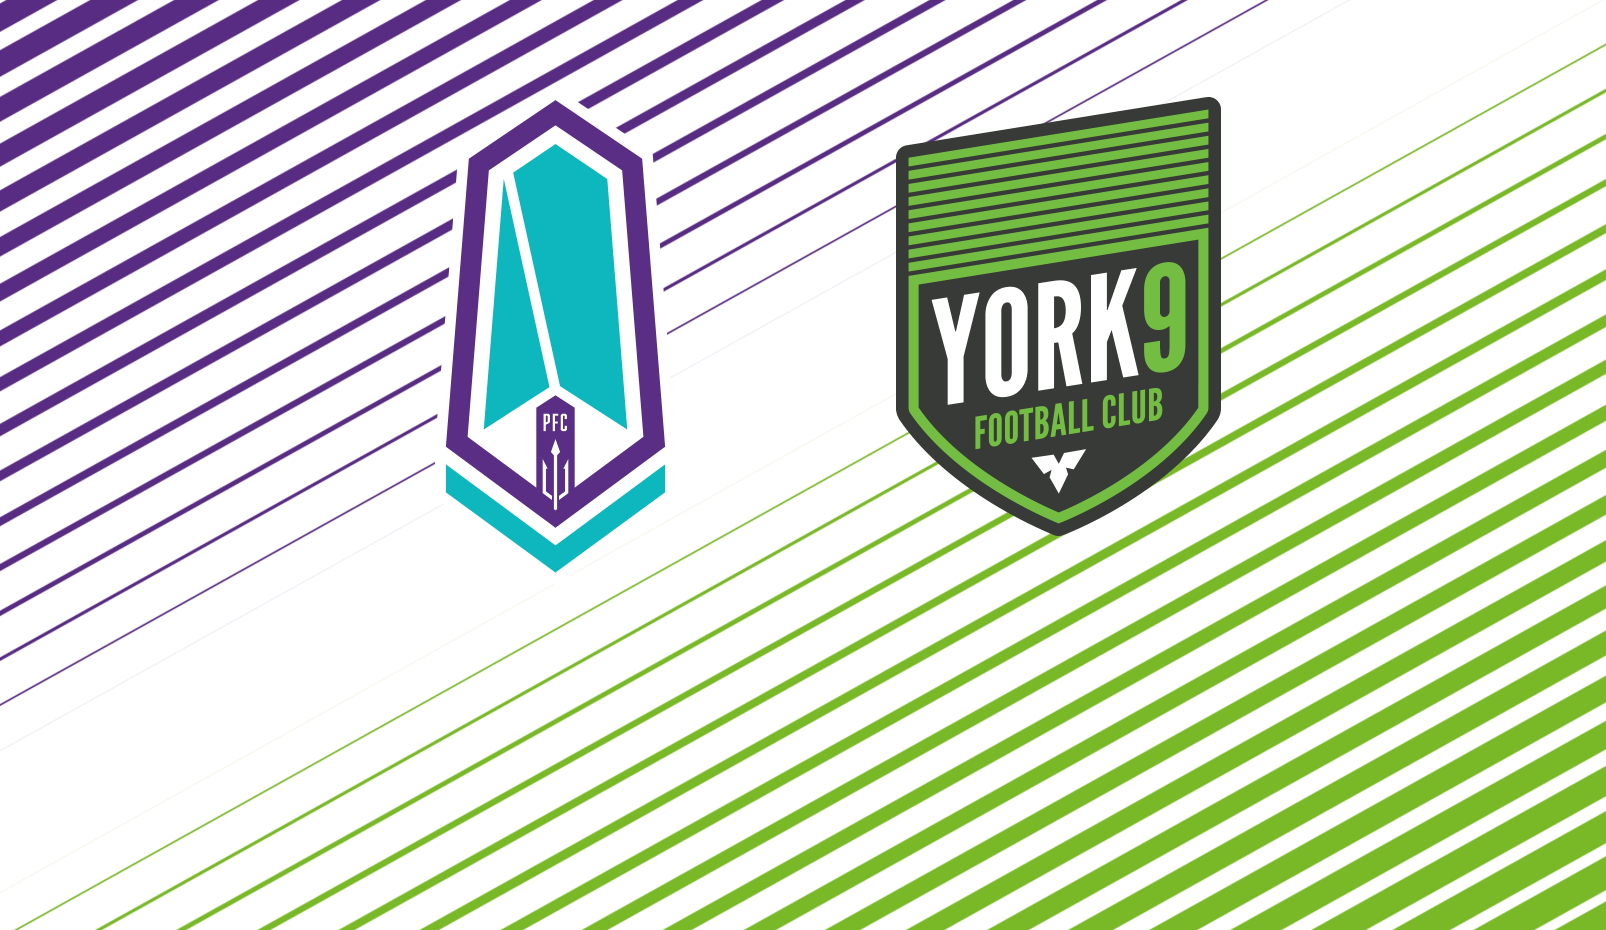 / Vs Preview Pacific Fc Vs York9 Fc Match 71 Canadian